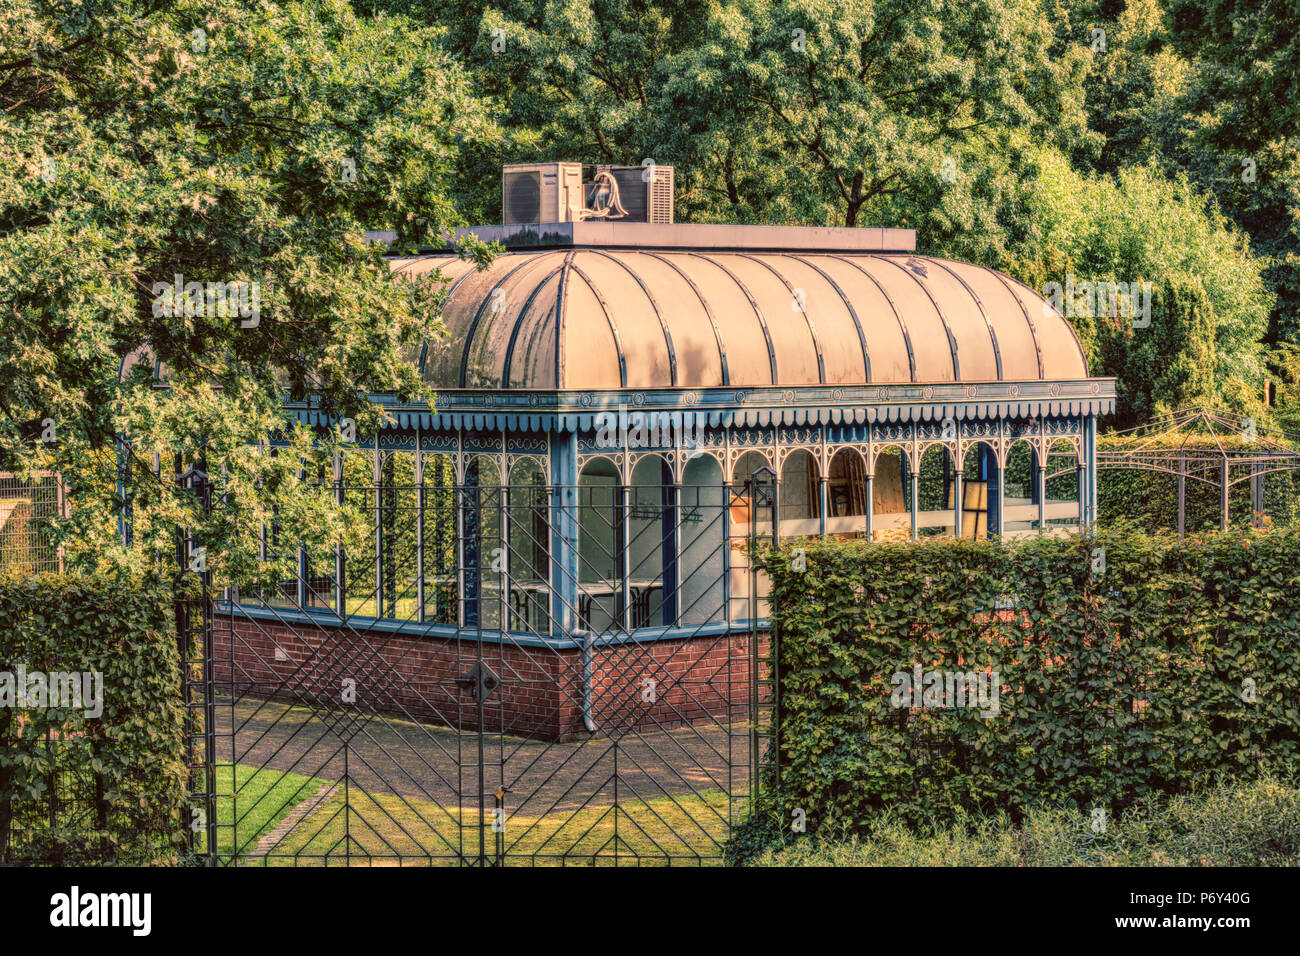 Tourainer pavilion in the city park of the city of Mülheim in Germany. - Stock Image